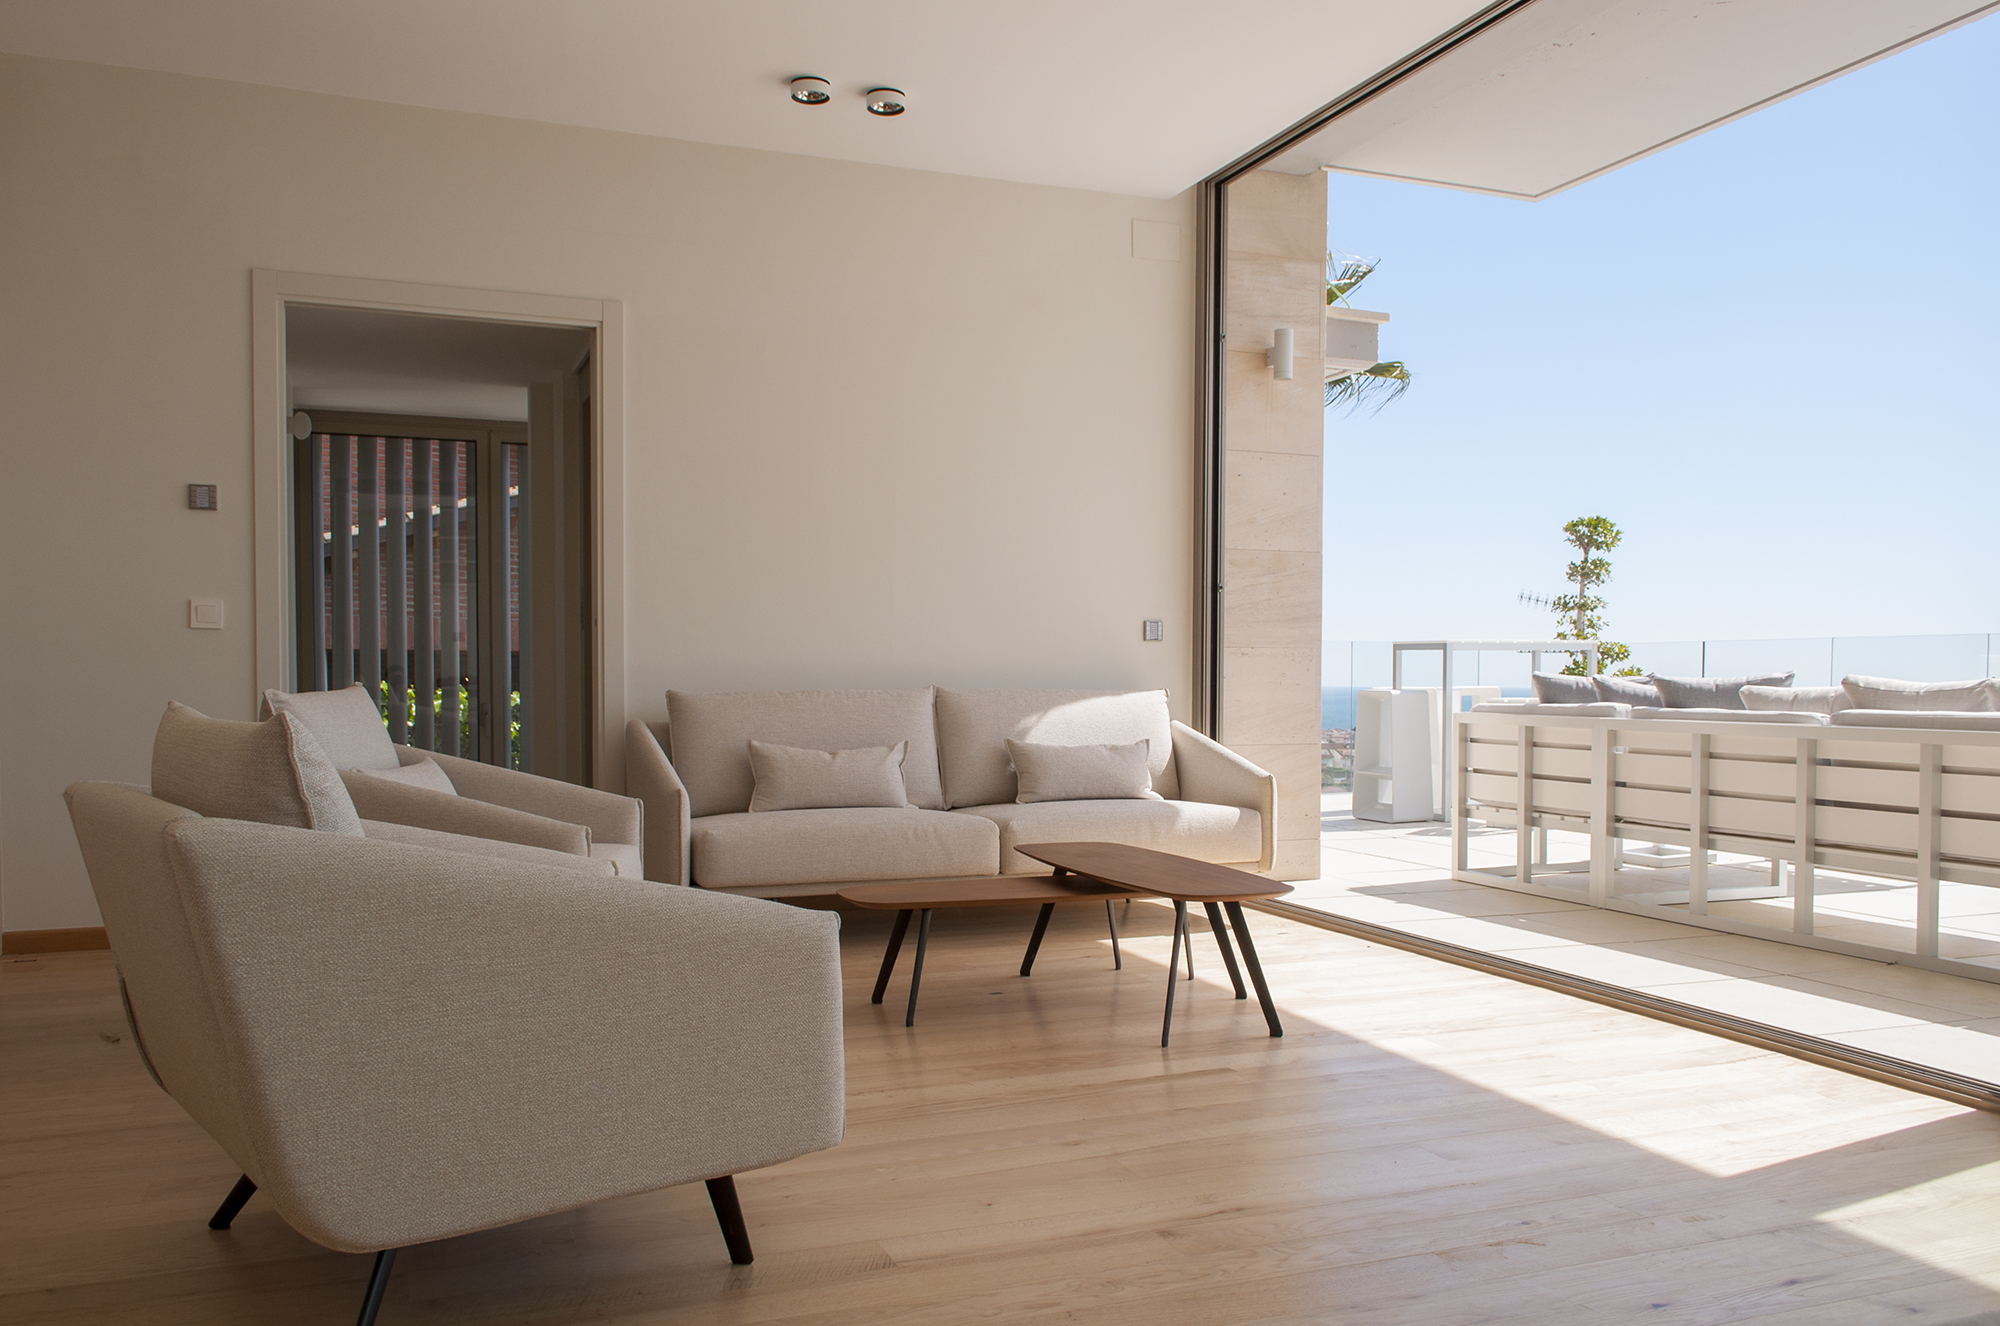 18-rardo-architects-houses-in-sitges-interior-design-living-room-dining-room-sea-view-sofa-costura-stua